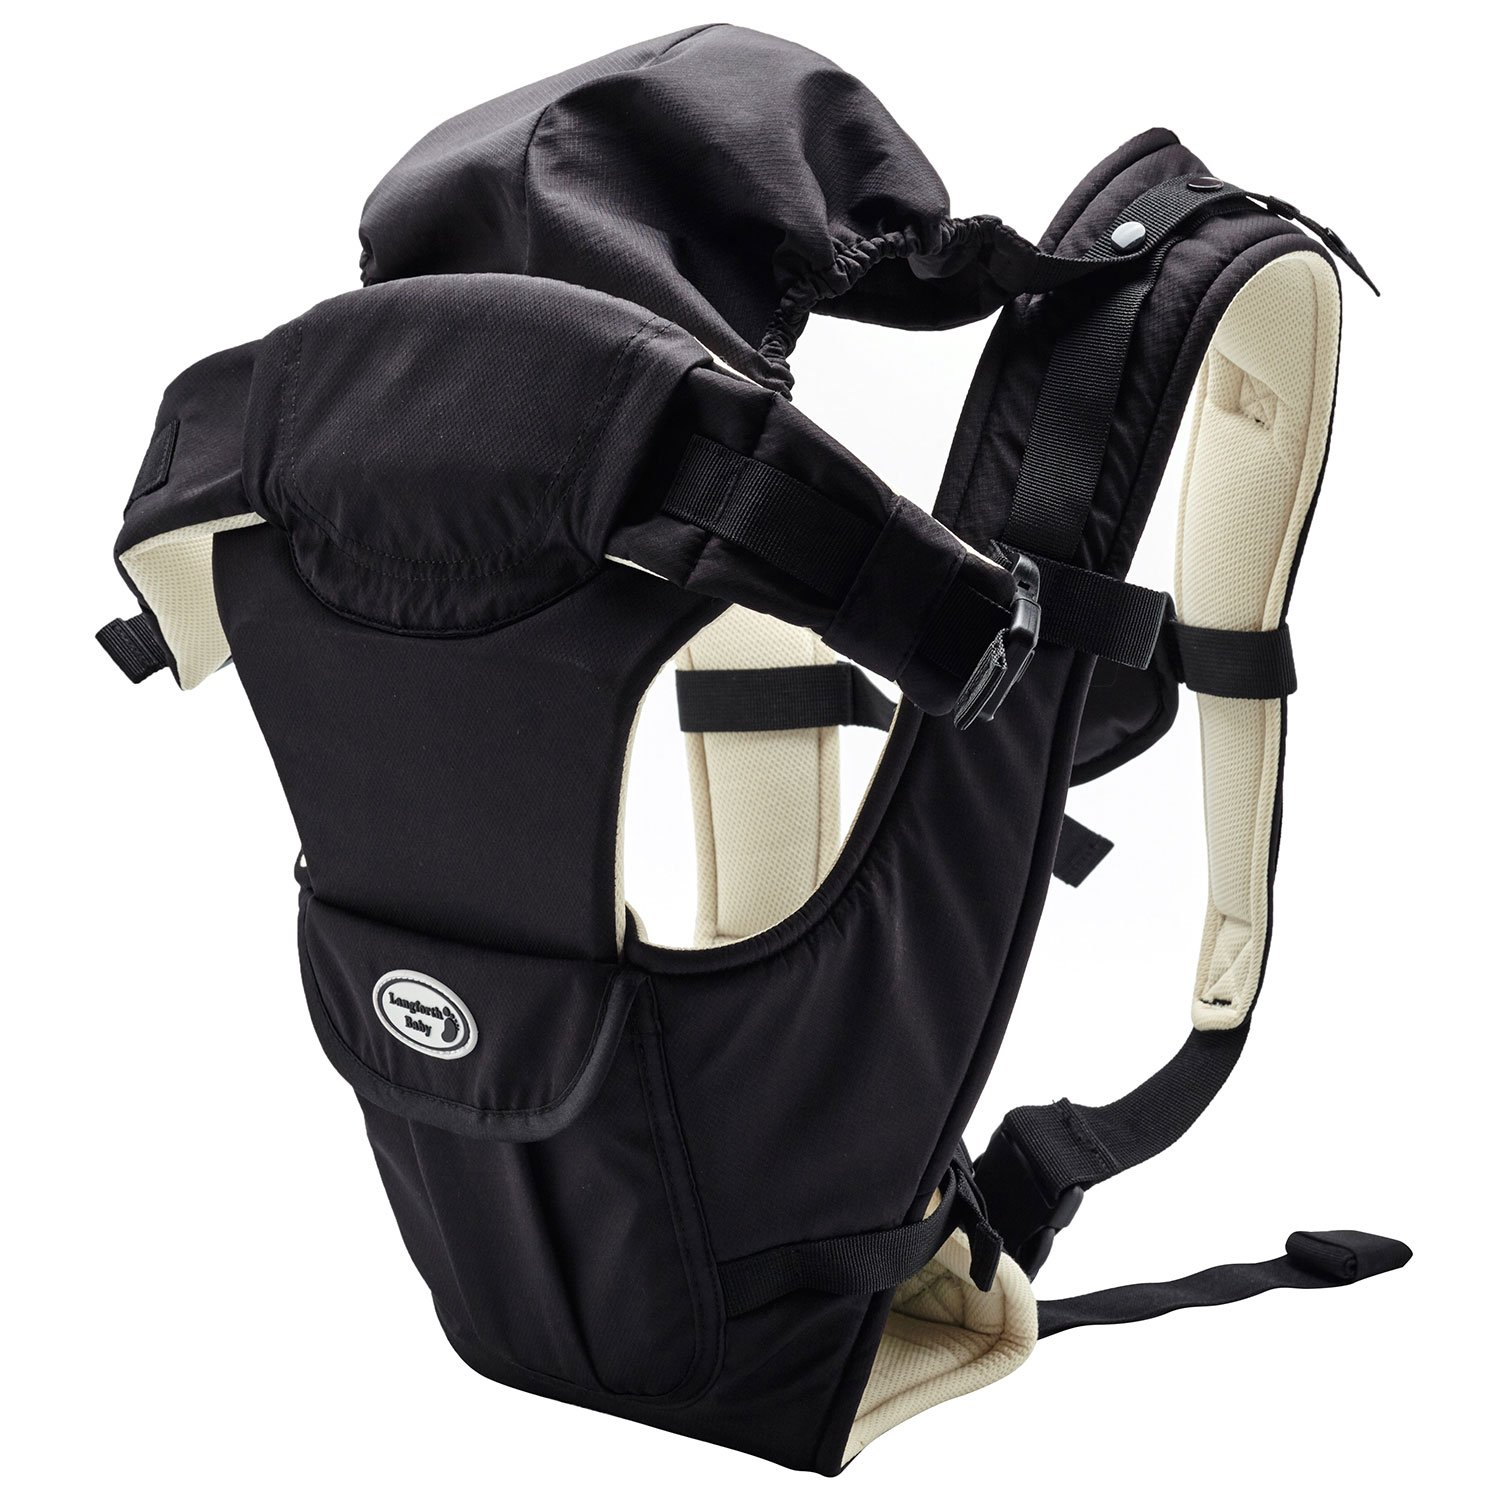 New Unique Design Baby Carrier Soft Front baby Backpack 5 Carrying